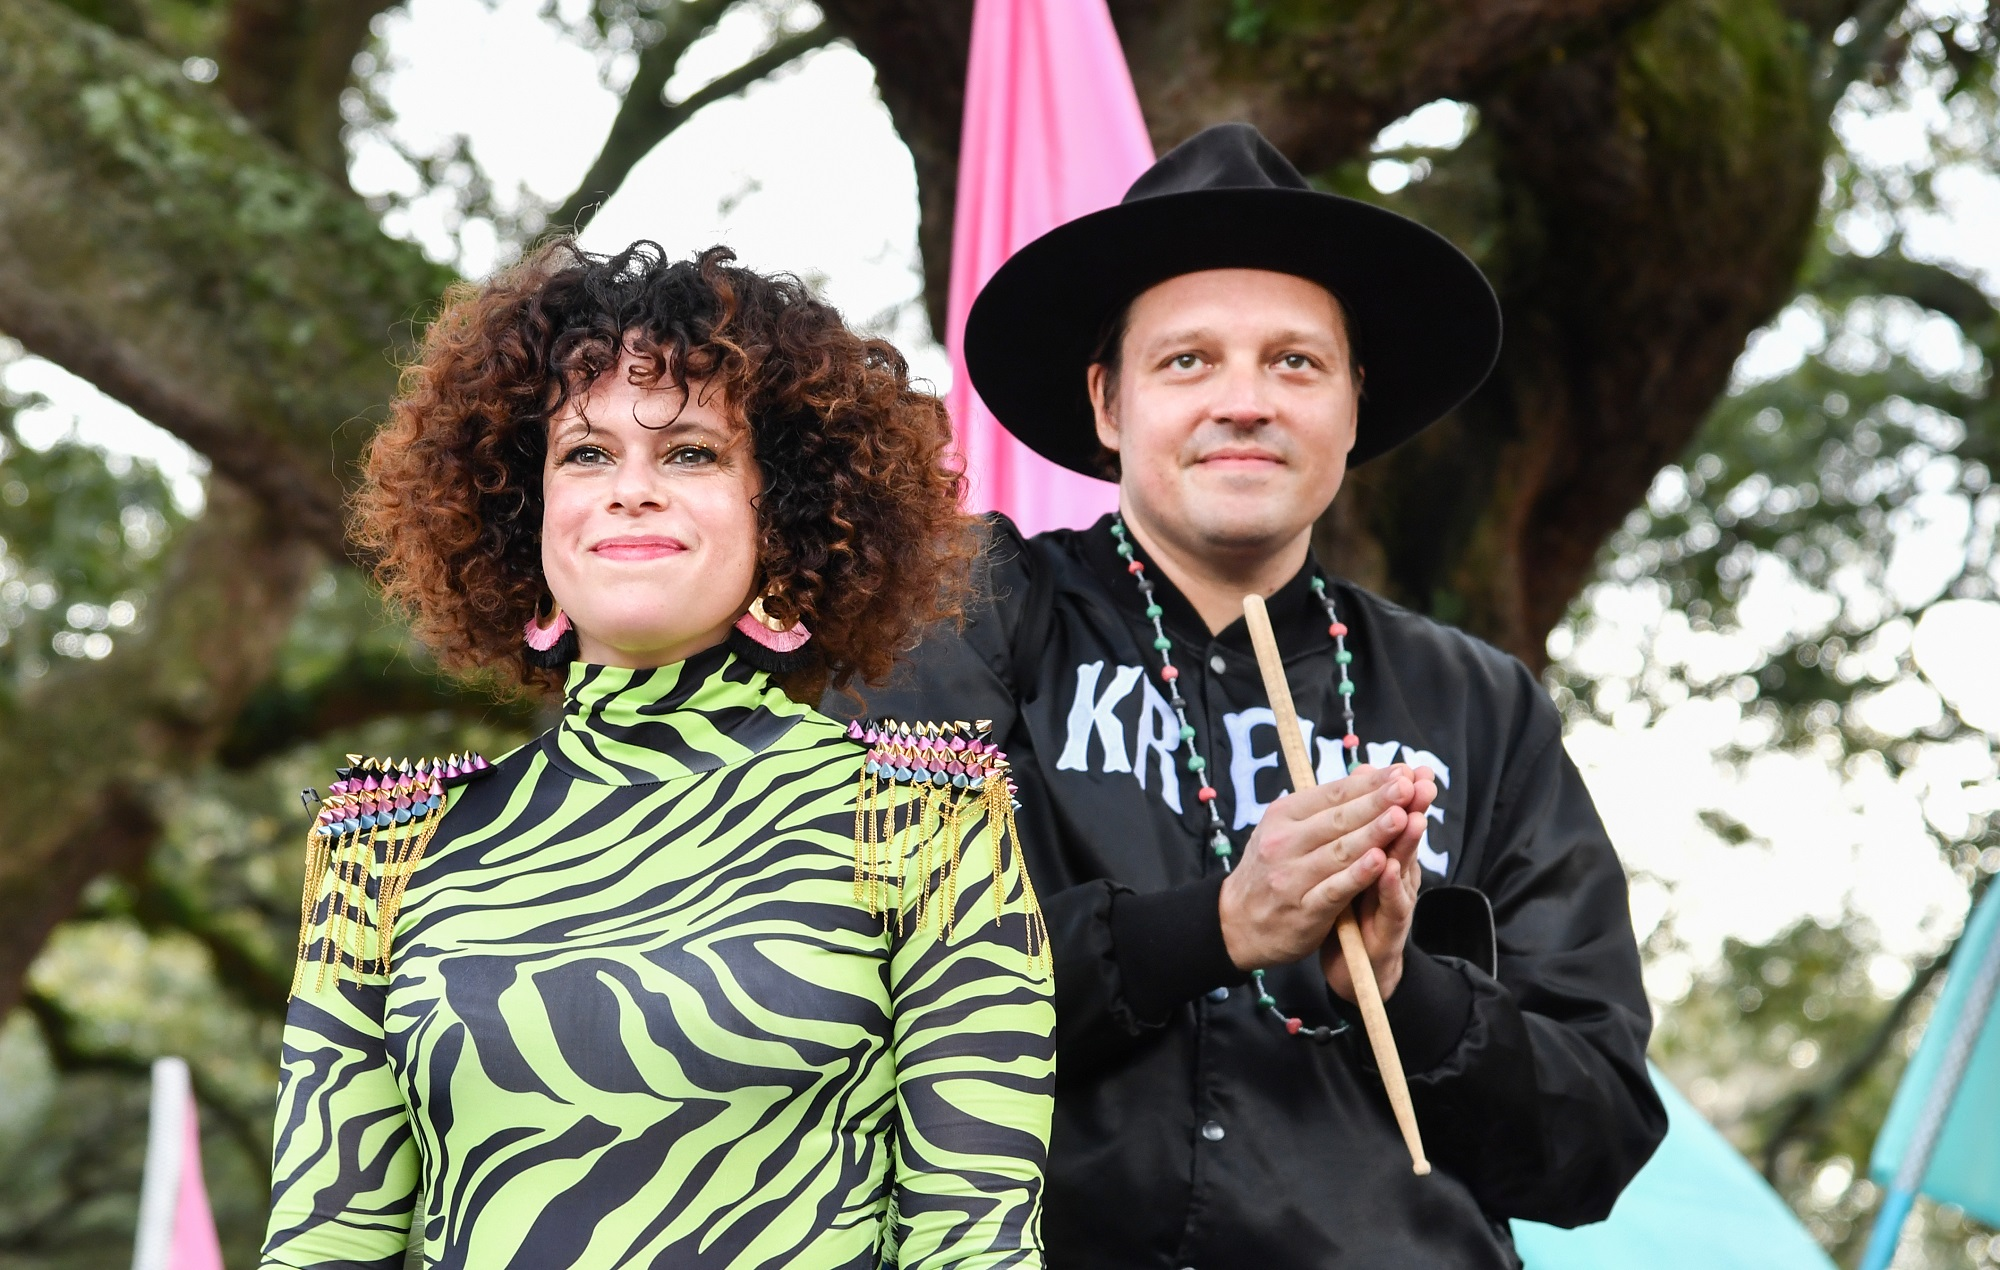 Watch Arcade Fire team up with the Preservation Hall Jazz Band for reworking of Mardi Gras classic 'Iko Iko'